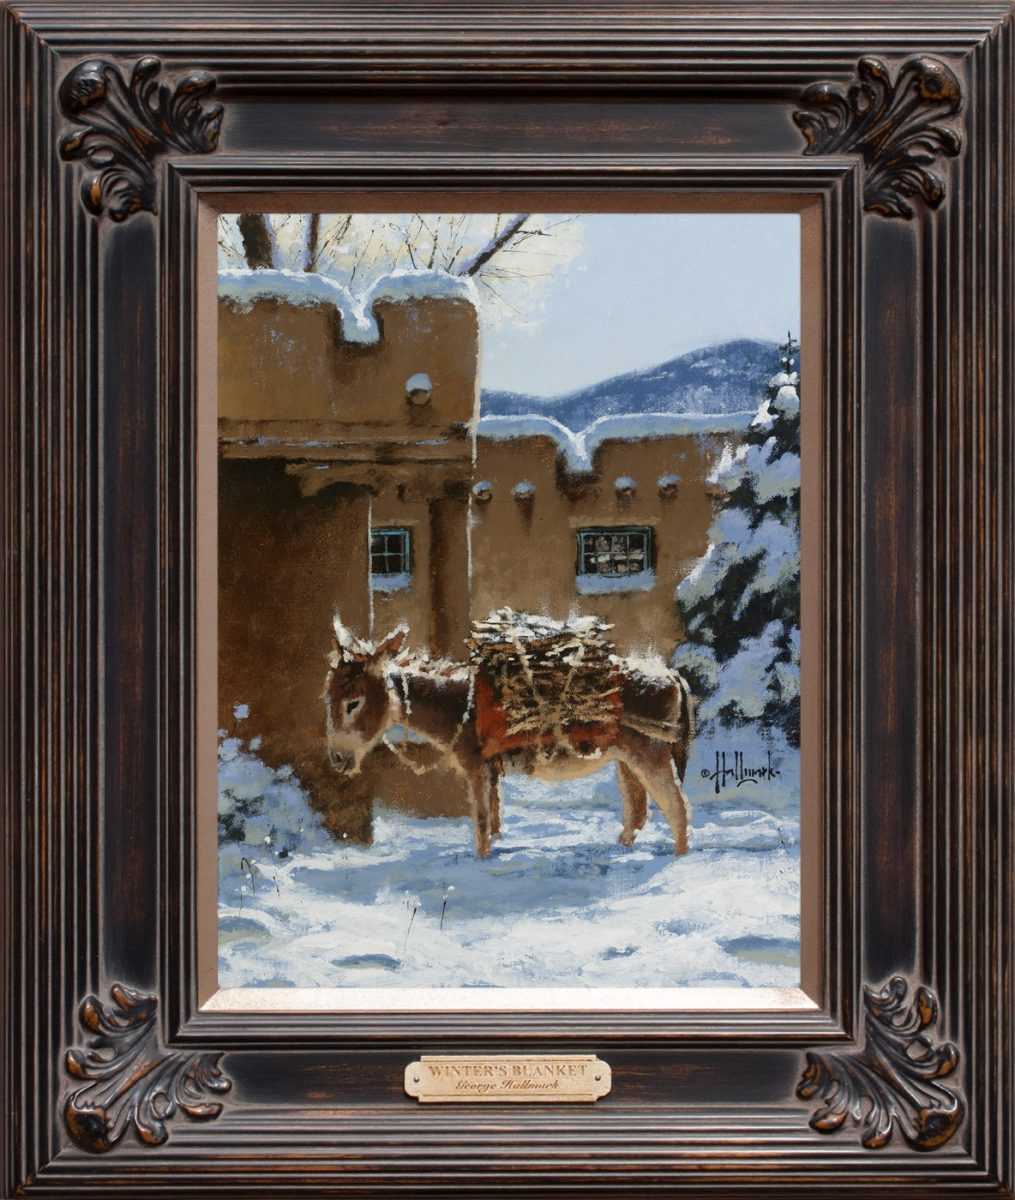 Winter's Blanket painting by George Hallmark